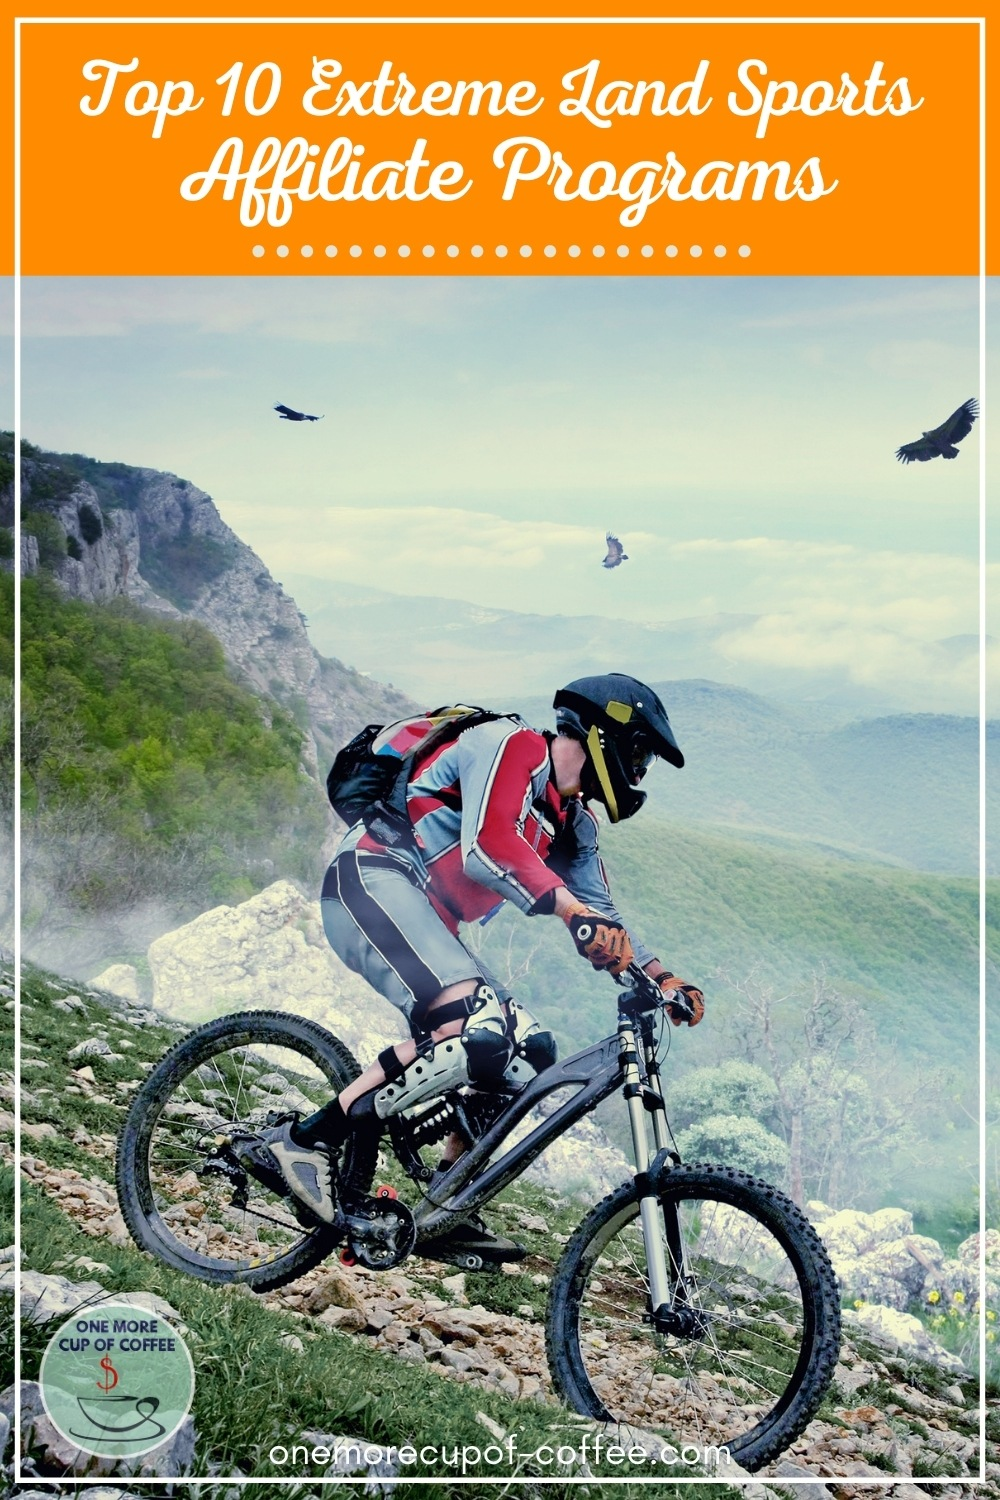 """man on his mountain bike with mountains in the background, with text overlay """"Top 10 Extreme Land Sports Affiliate Programs"""""""